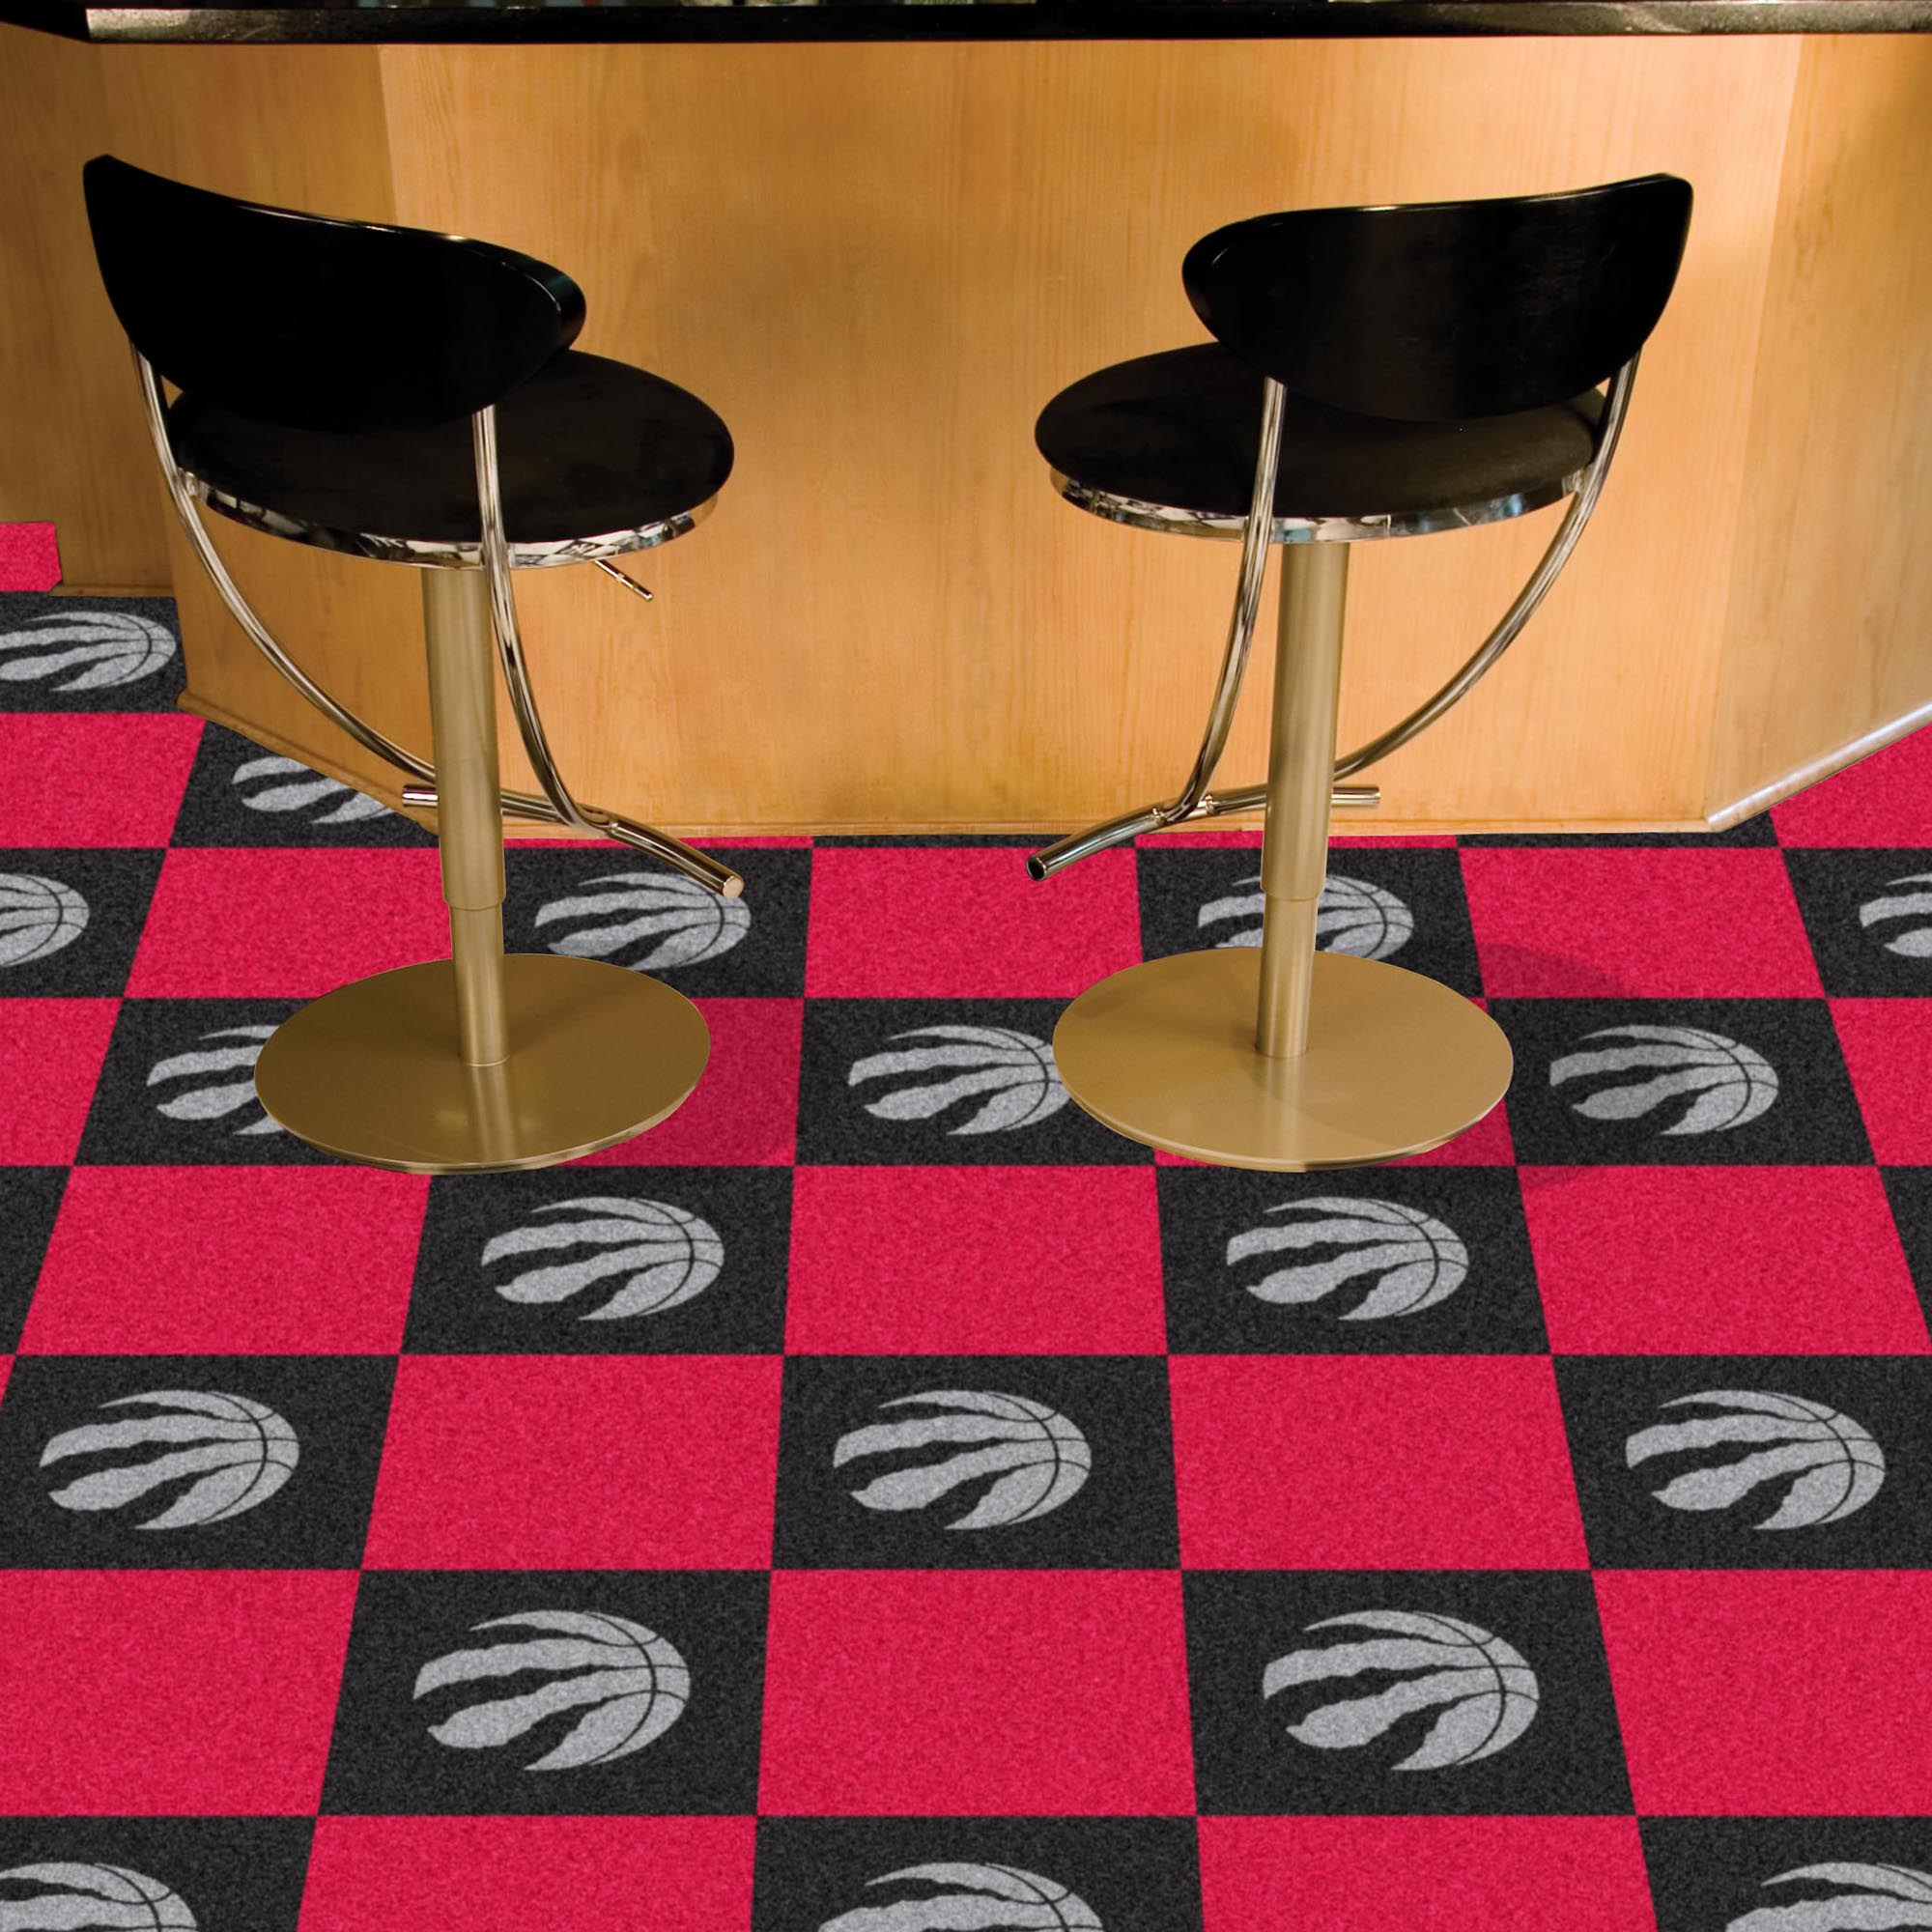 Toronto Raptors Carpet Tiles 18x18 in.